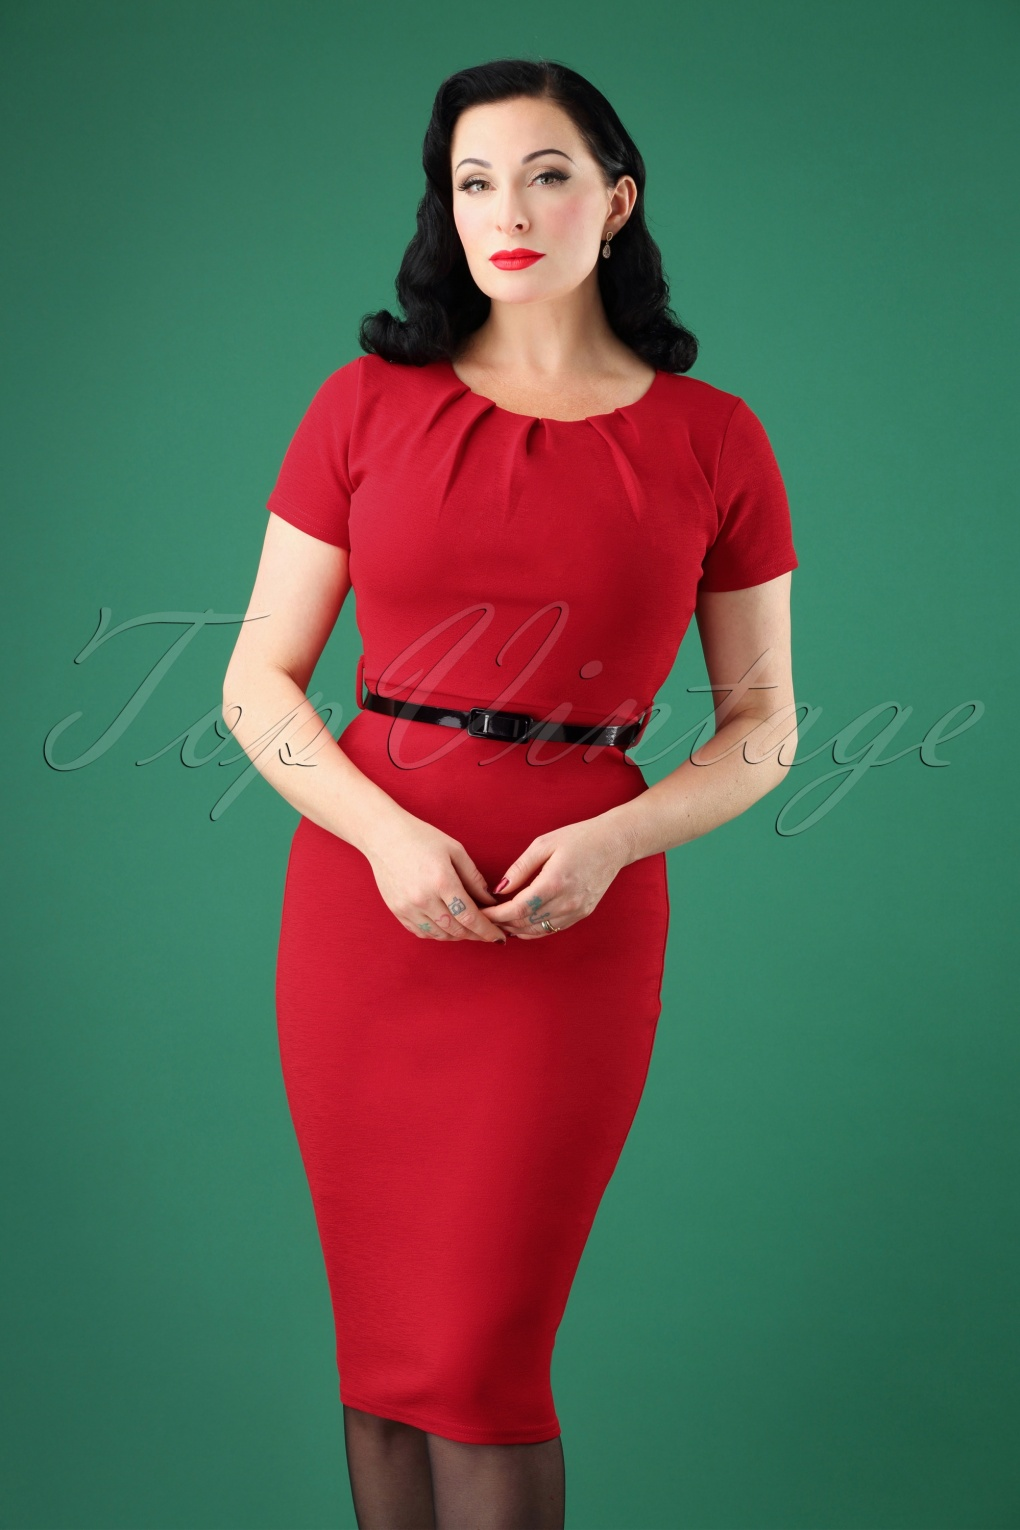 Vintage Christmas Dress | Party Dresses | Night Out Outfits 50s Valery Midi Pencil Dress in Lipstick Red £34.08 AT vintagedancer.com